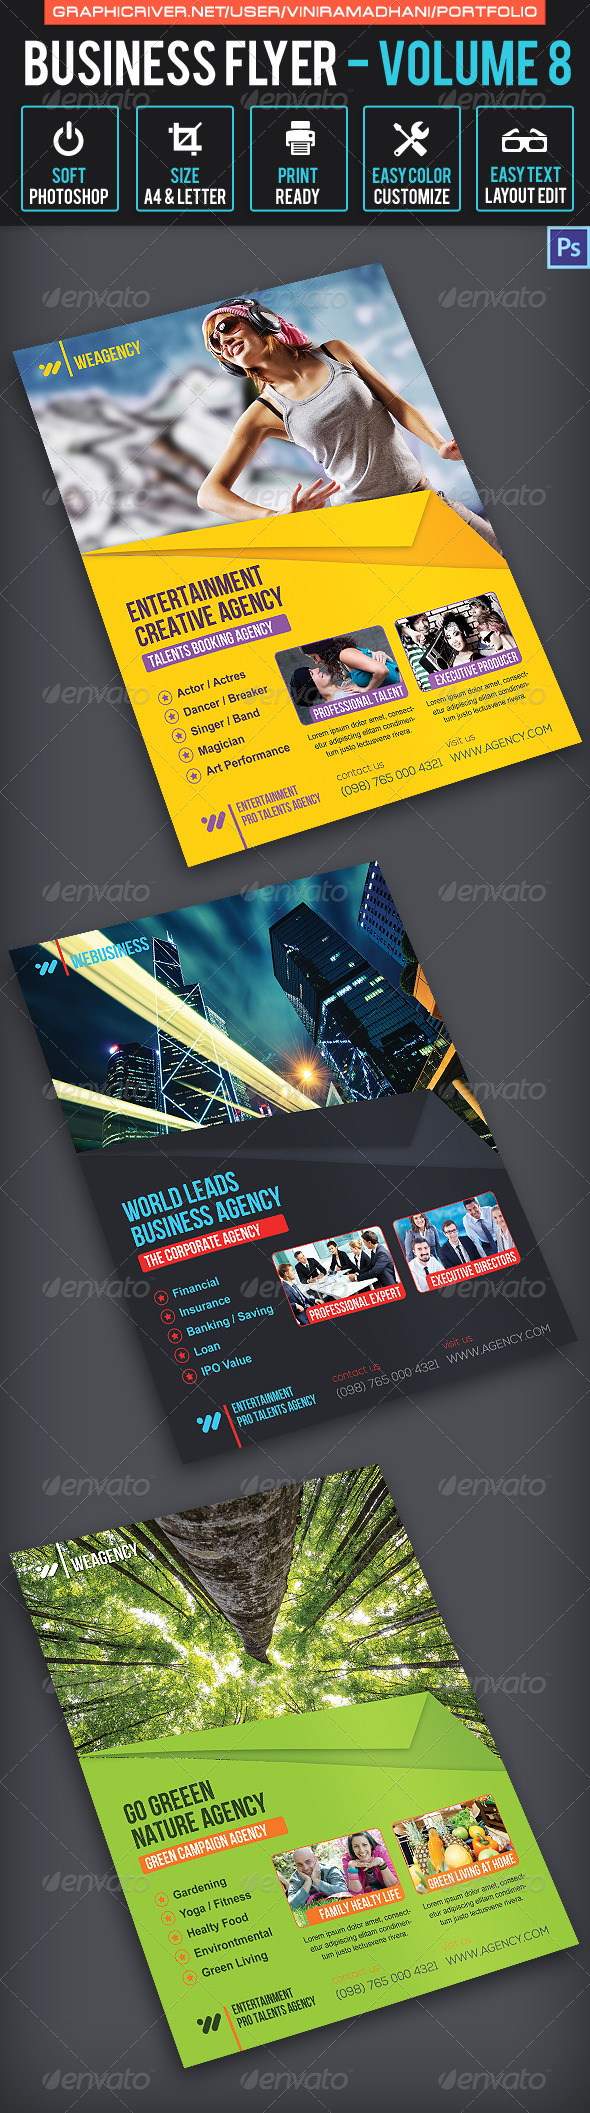 Business Flyer | Volume 8 - Corporate Flyers